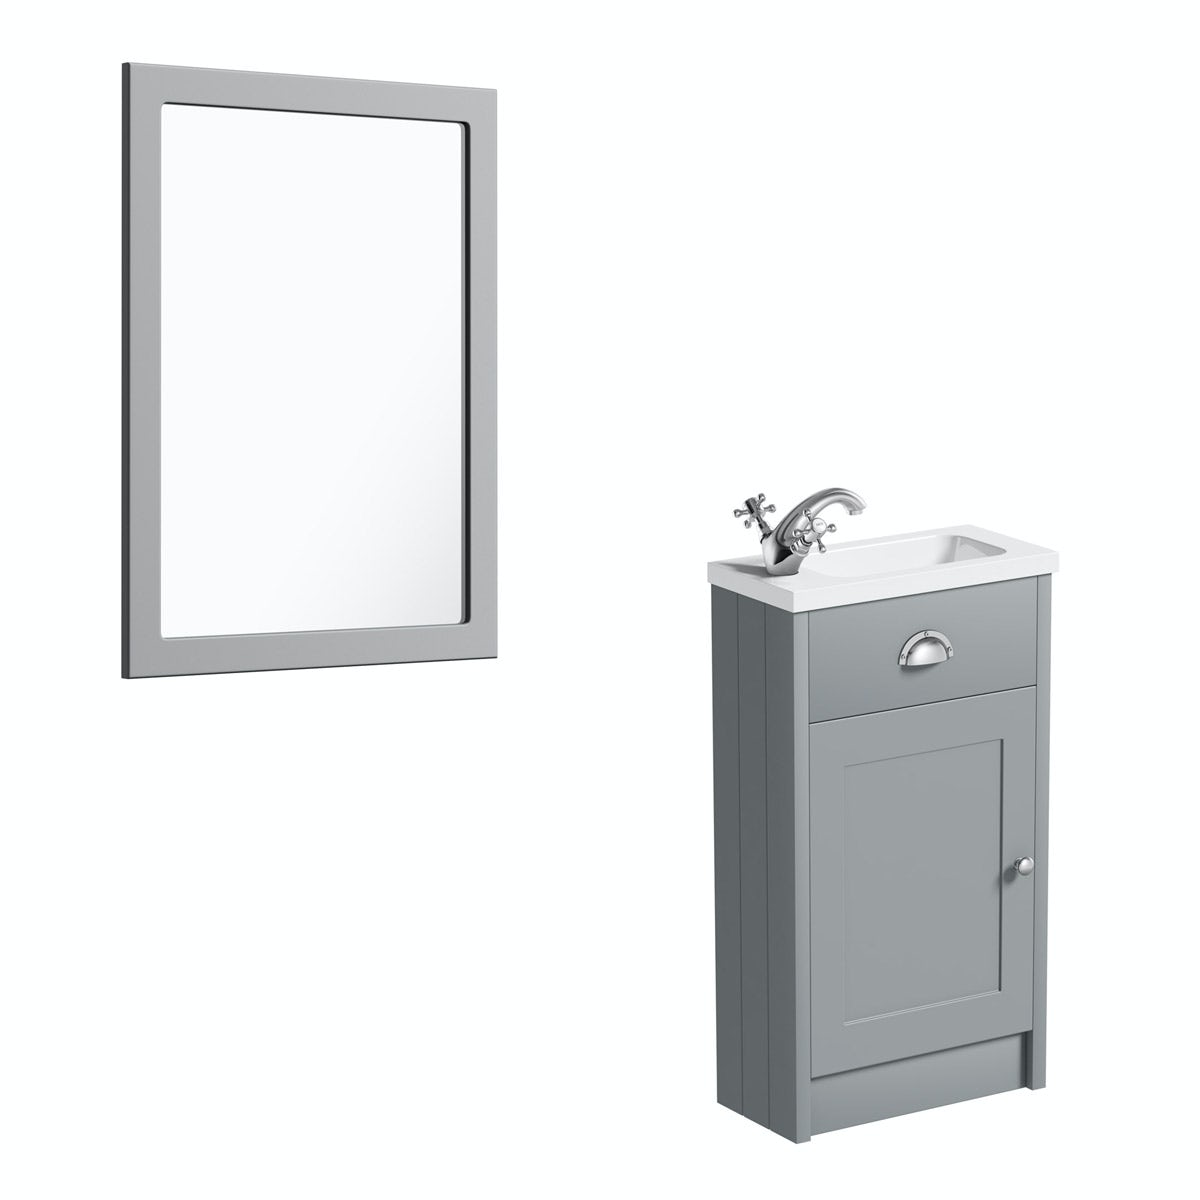 The Bath Co. Dulwich stone grey cloakroom vanity unit and mirror 600mm